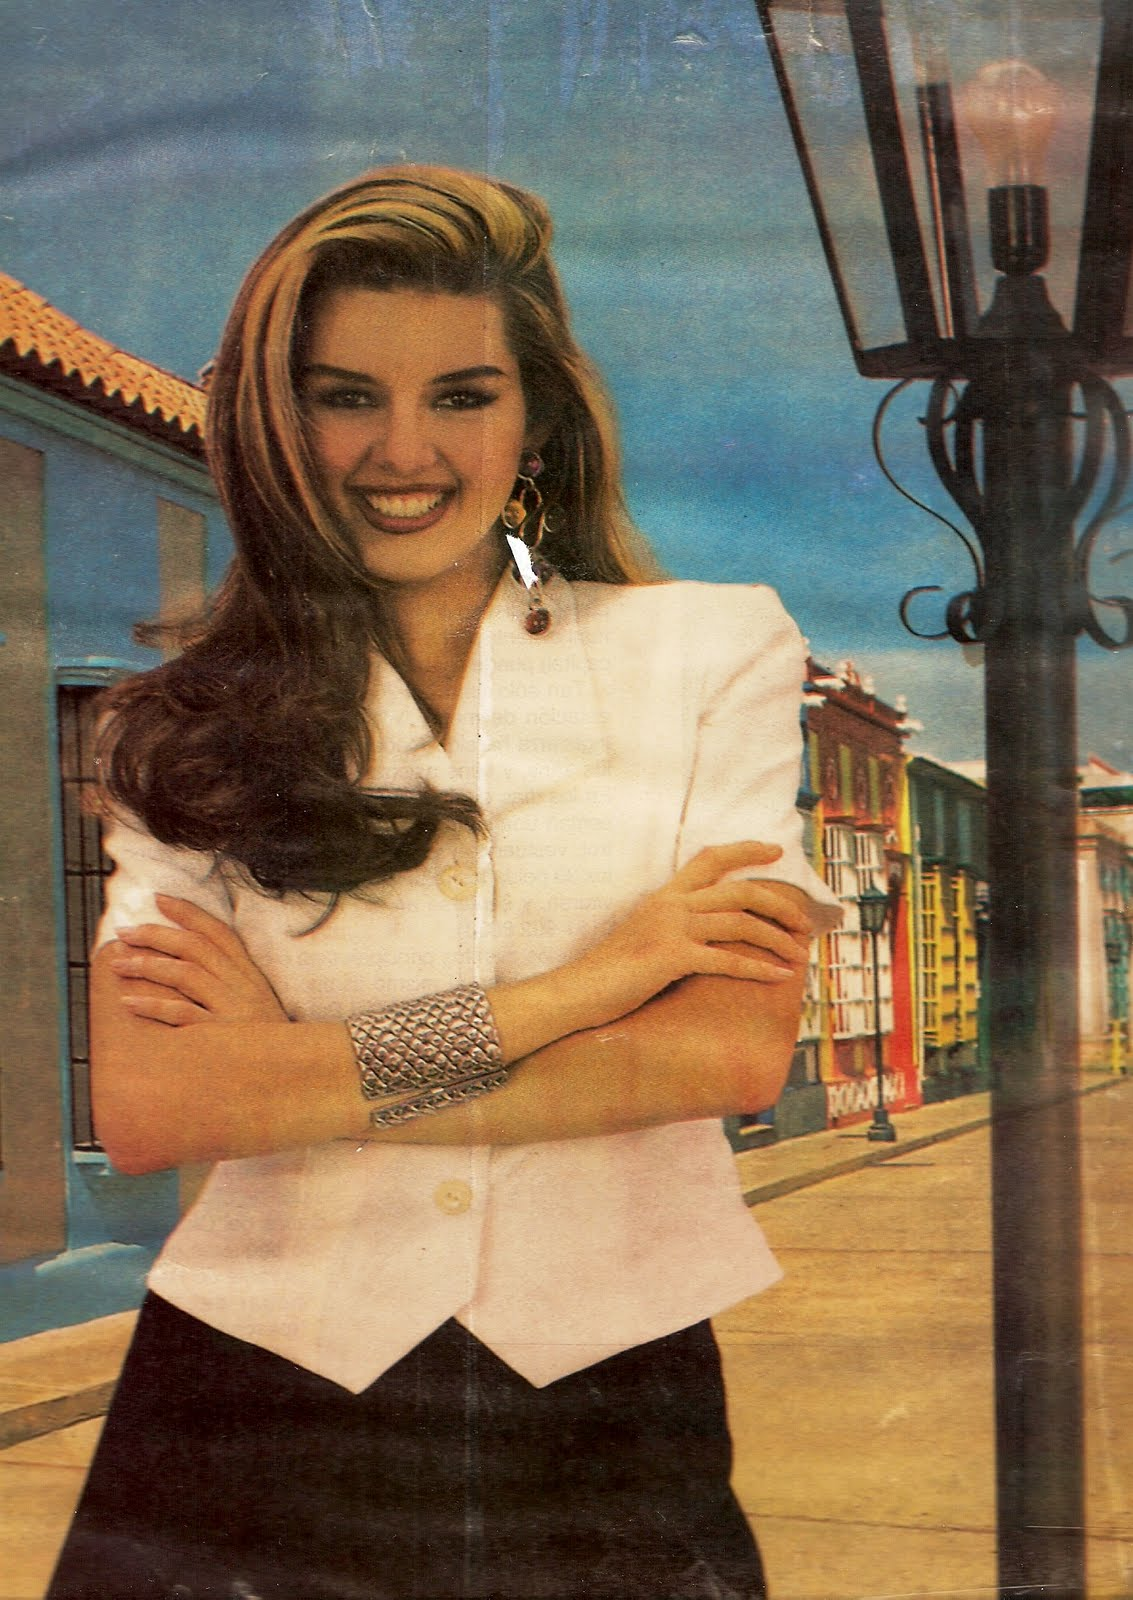 Alicia Machado Hot Fotos Playboy